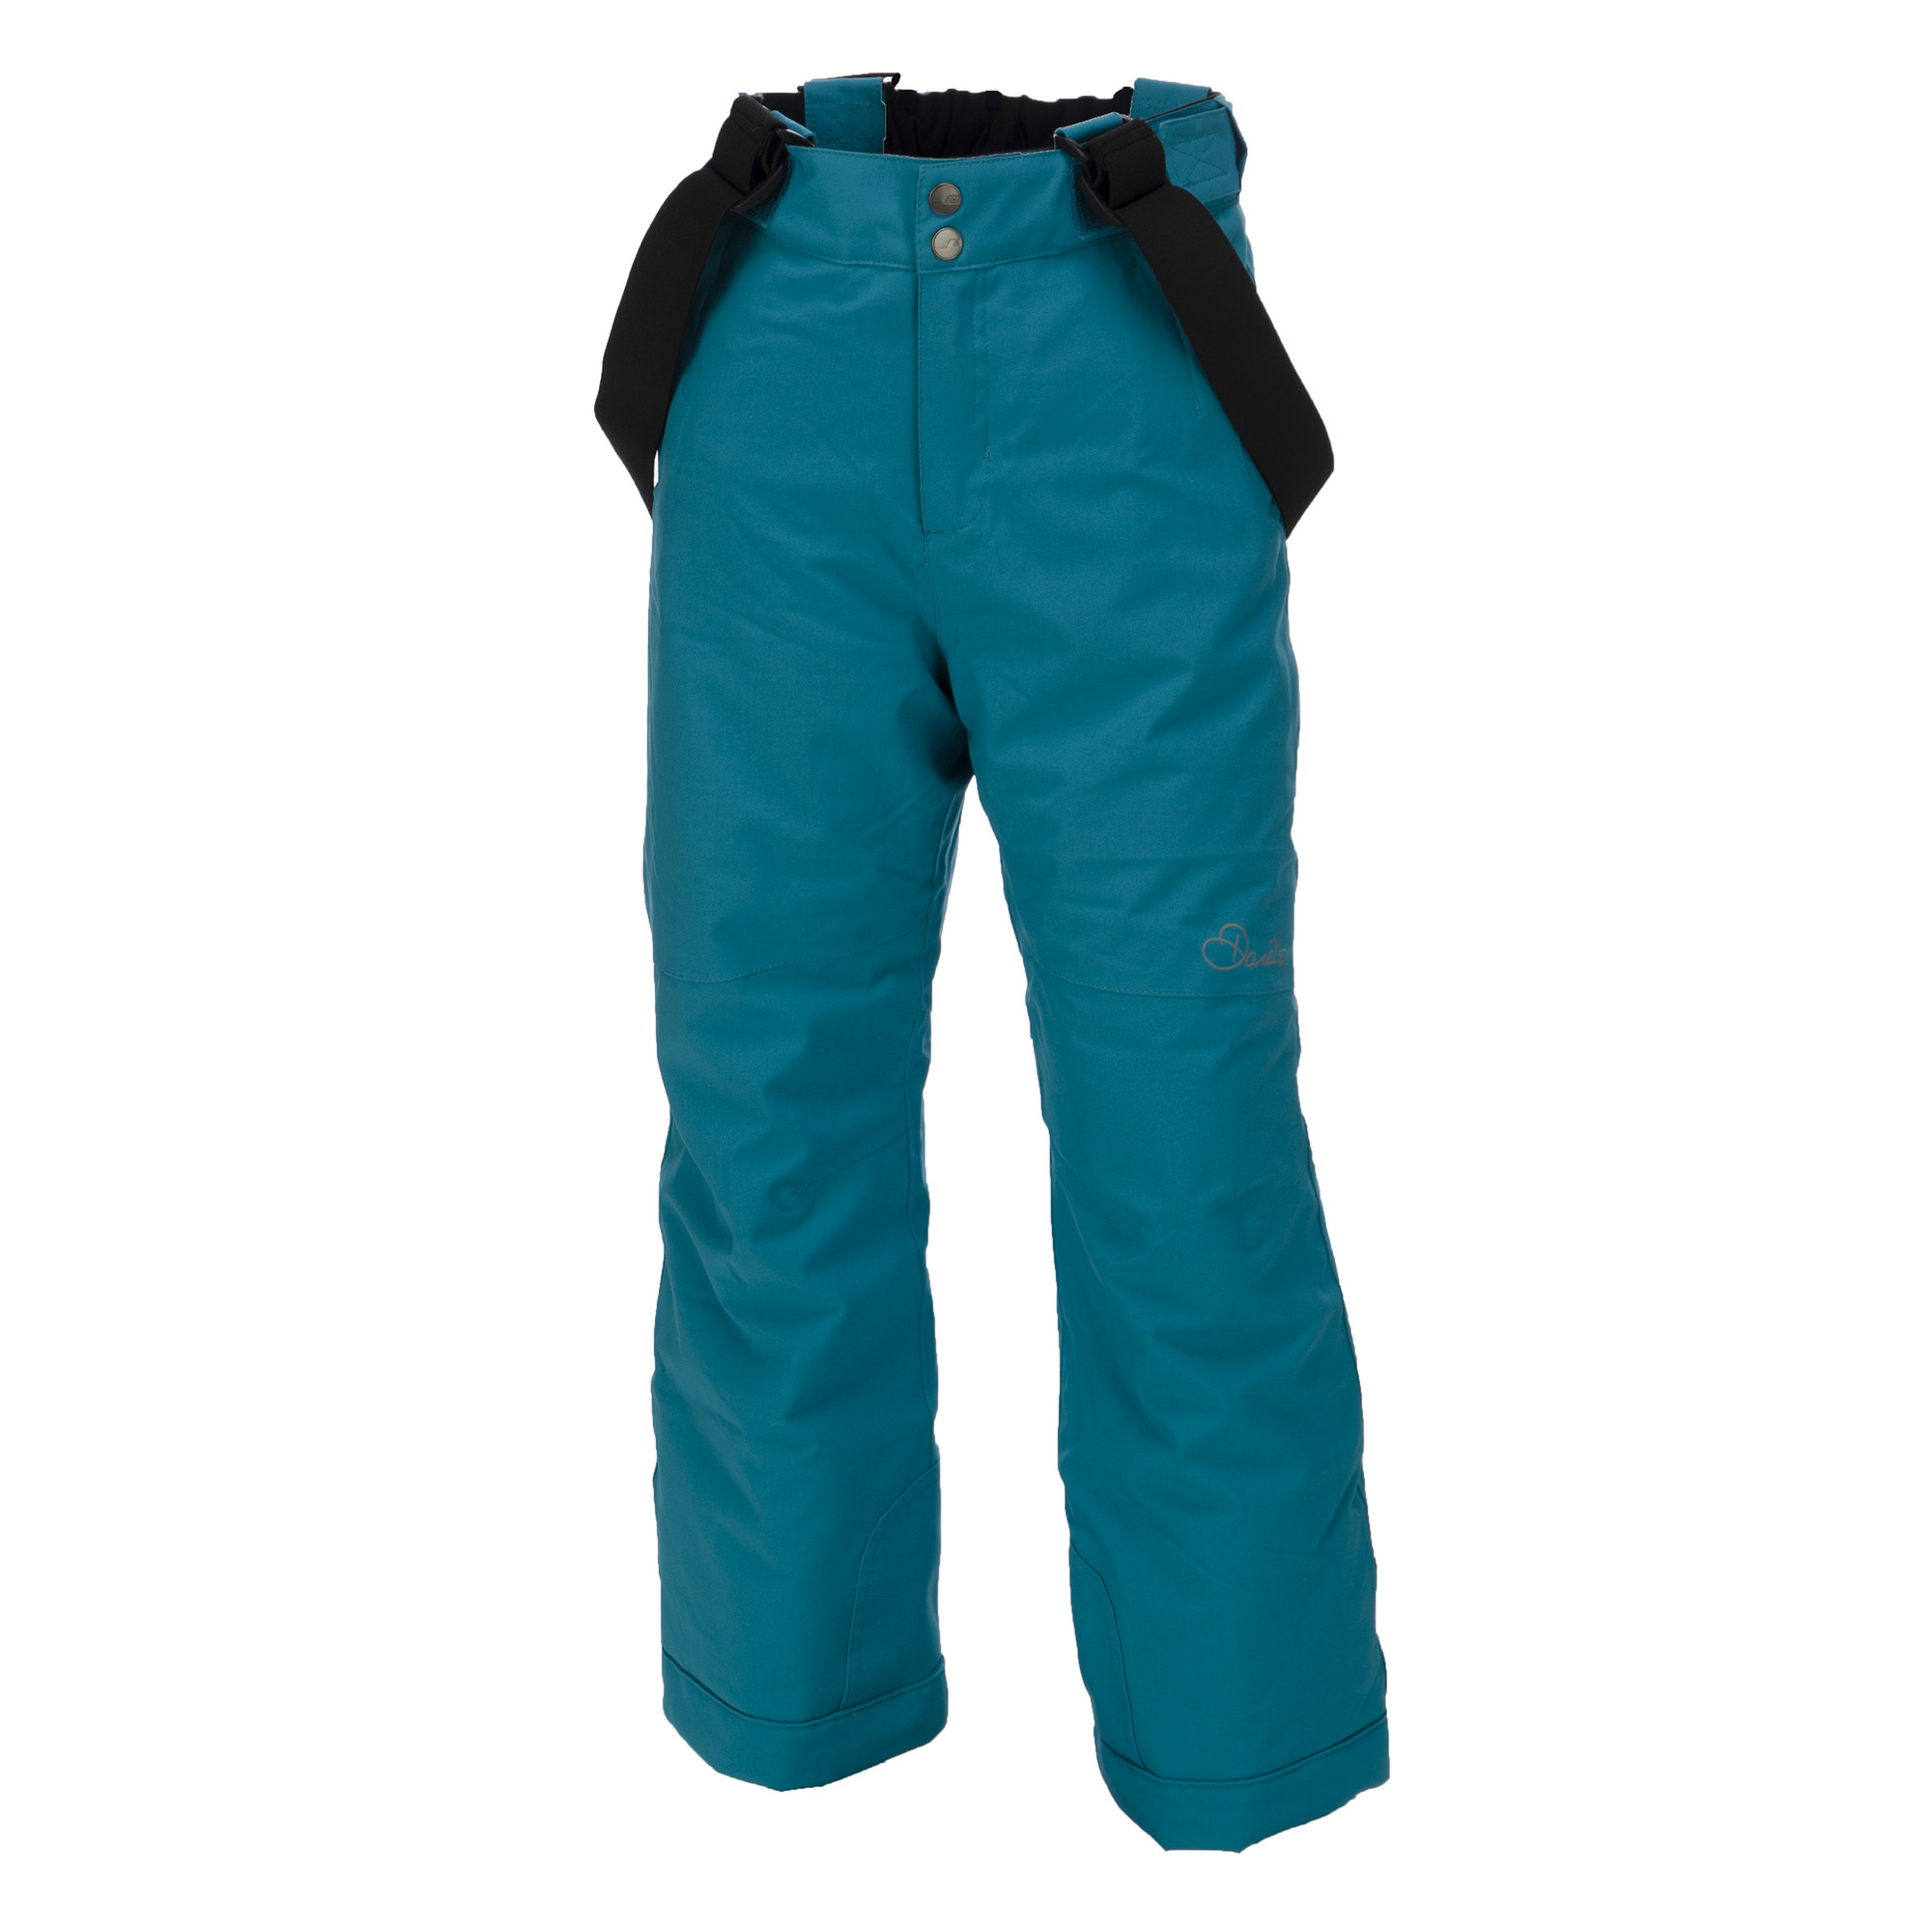 Blau Grün Dare2b Take On Kinder Skihose Blau Grün Skiwebshop De